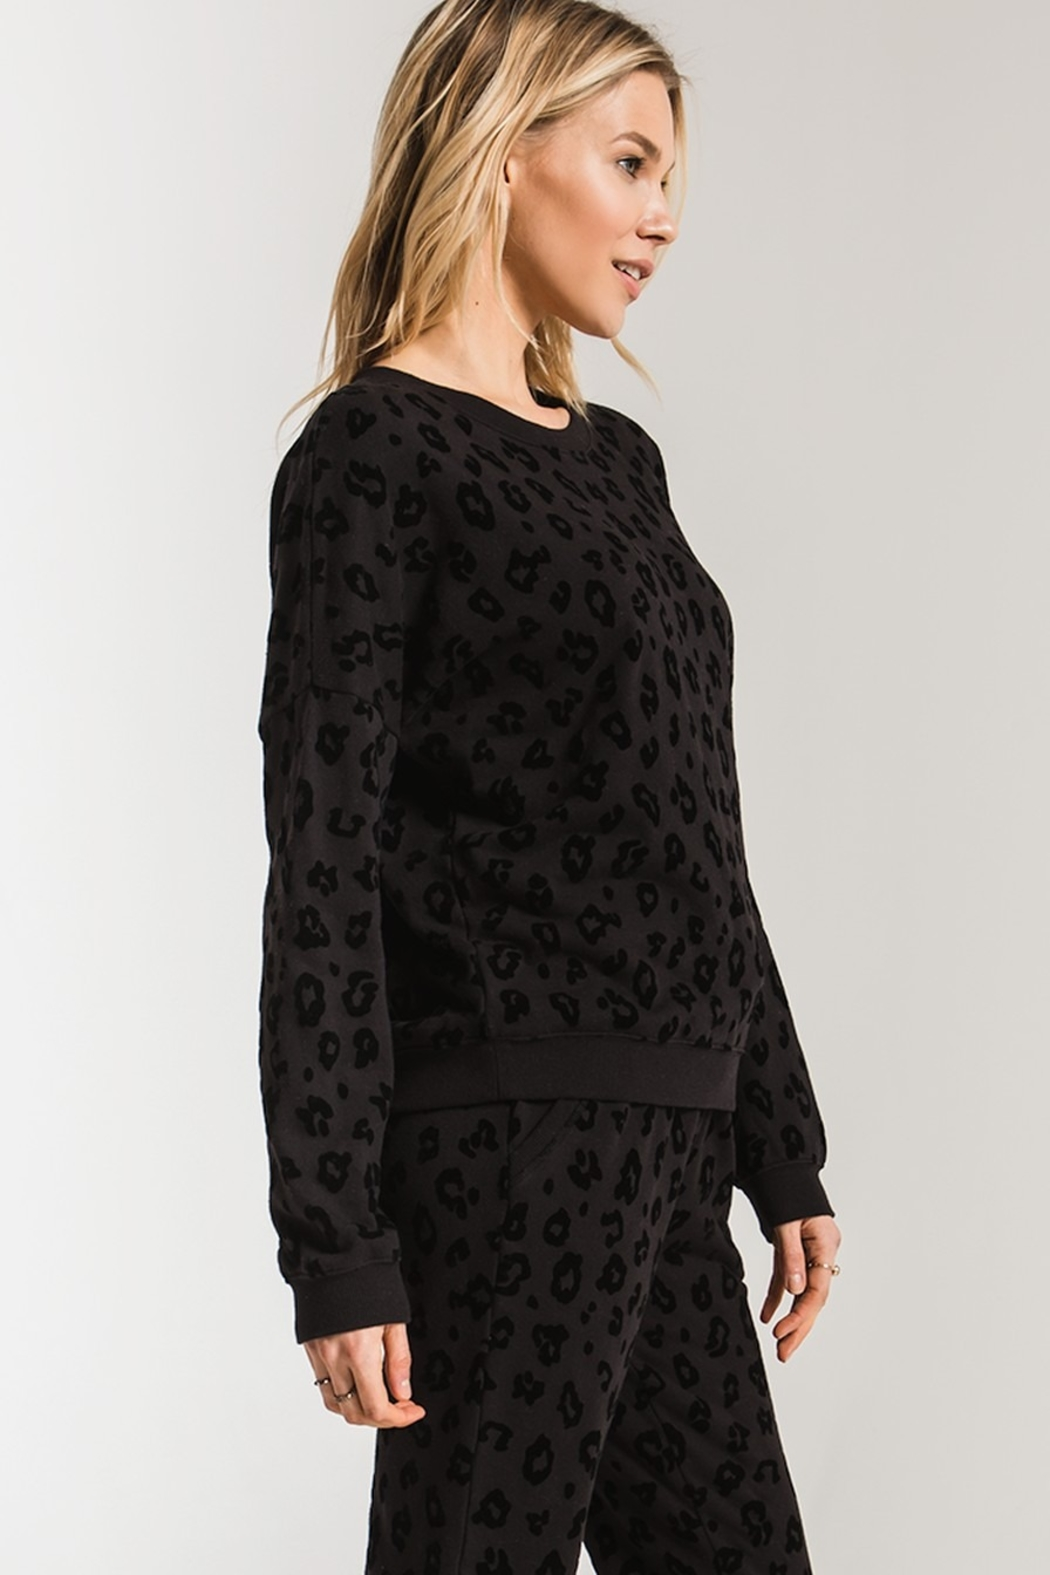 z supply Animal Flocked Pullover - Back Cropped Image